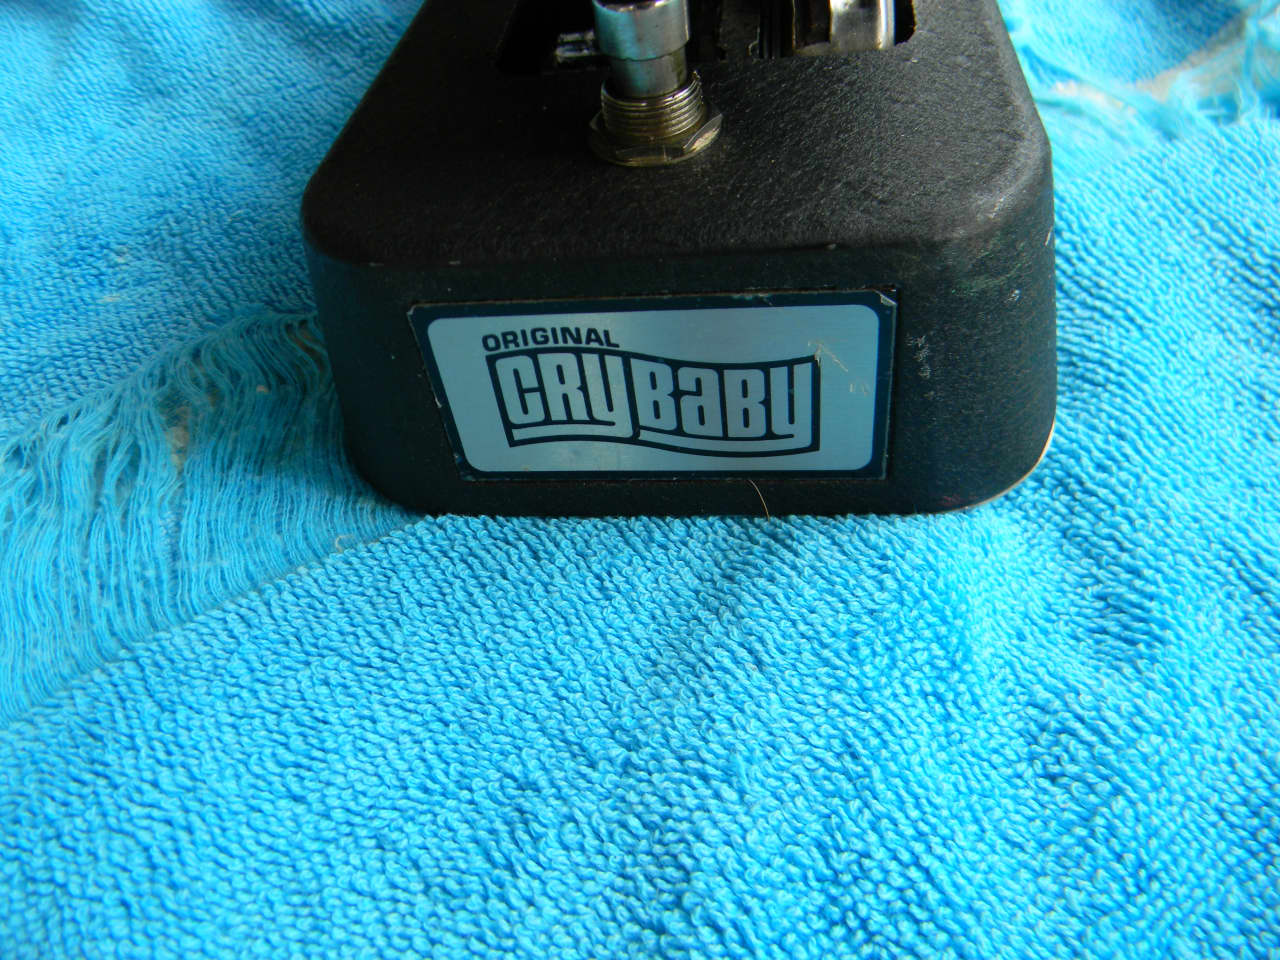 Dating a Dunlop Wah Pedal